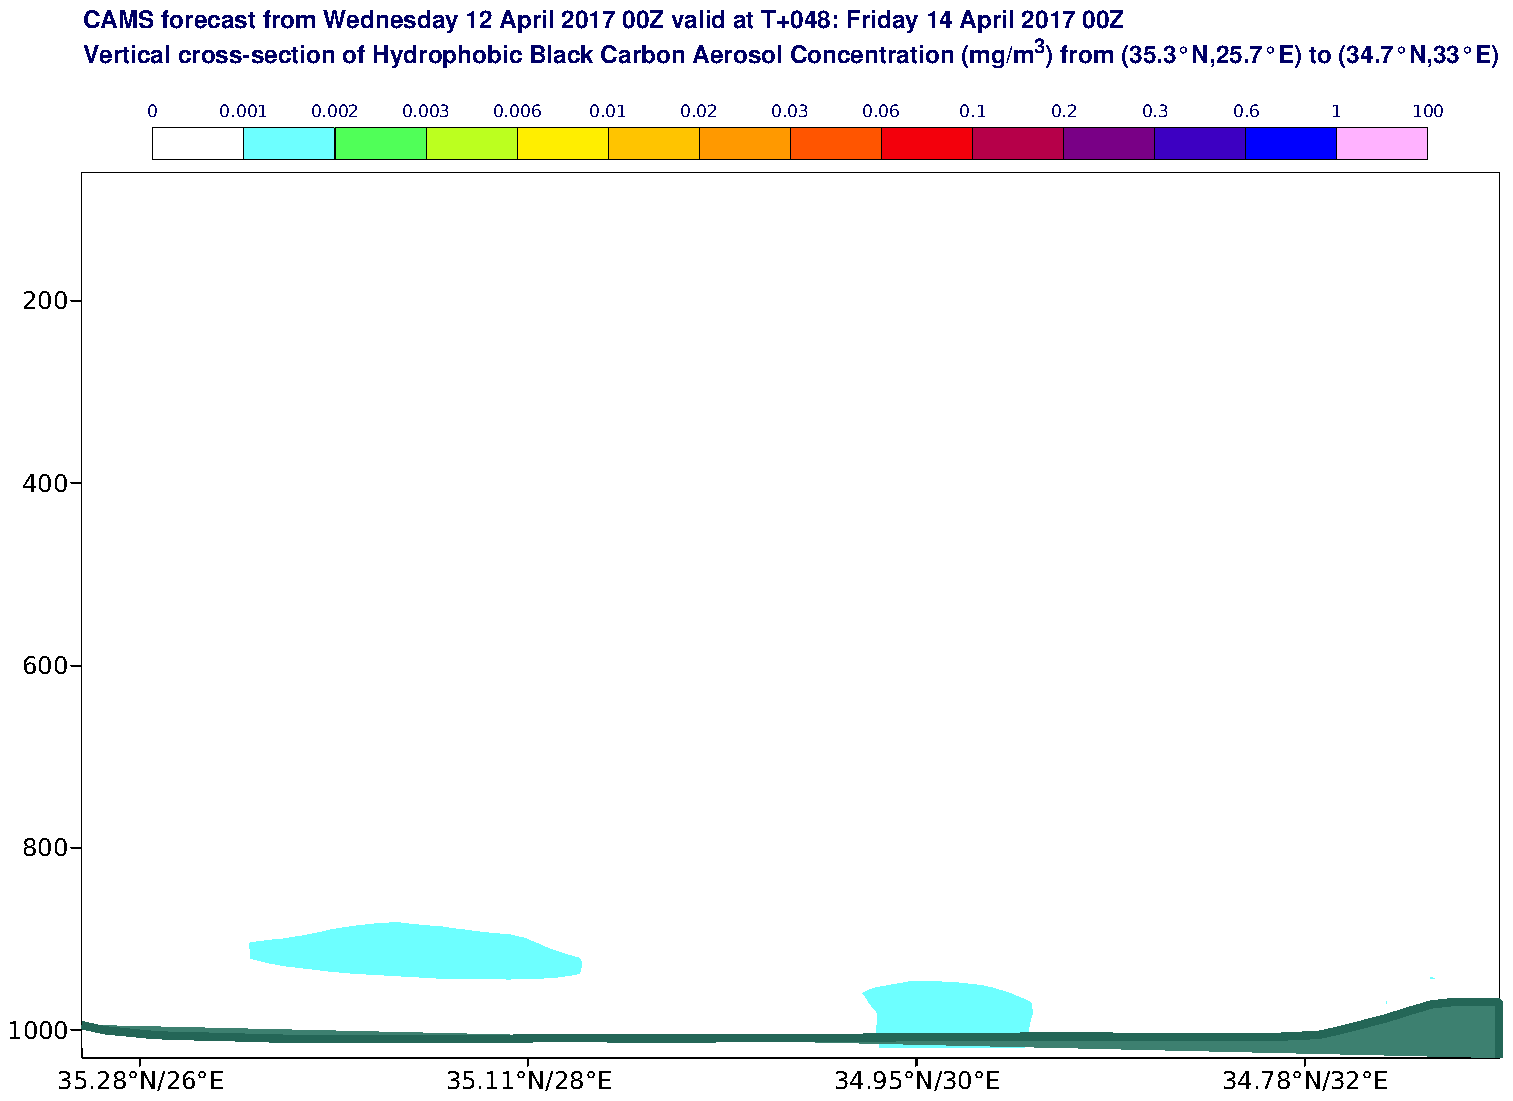 Vertical cross-section of Hydrophobic Black Carbon Aerosol Concentration (mg/m3) valid at T48 - 2017-04-14 00:00